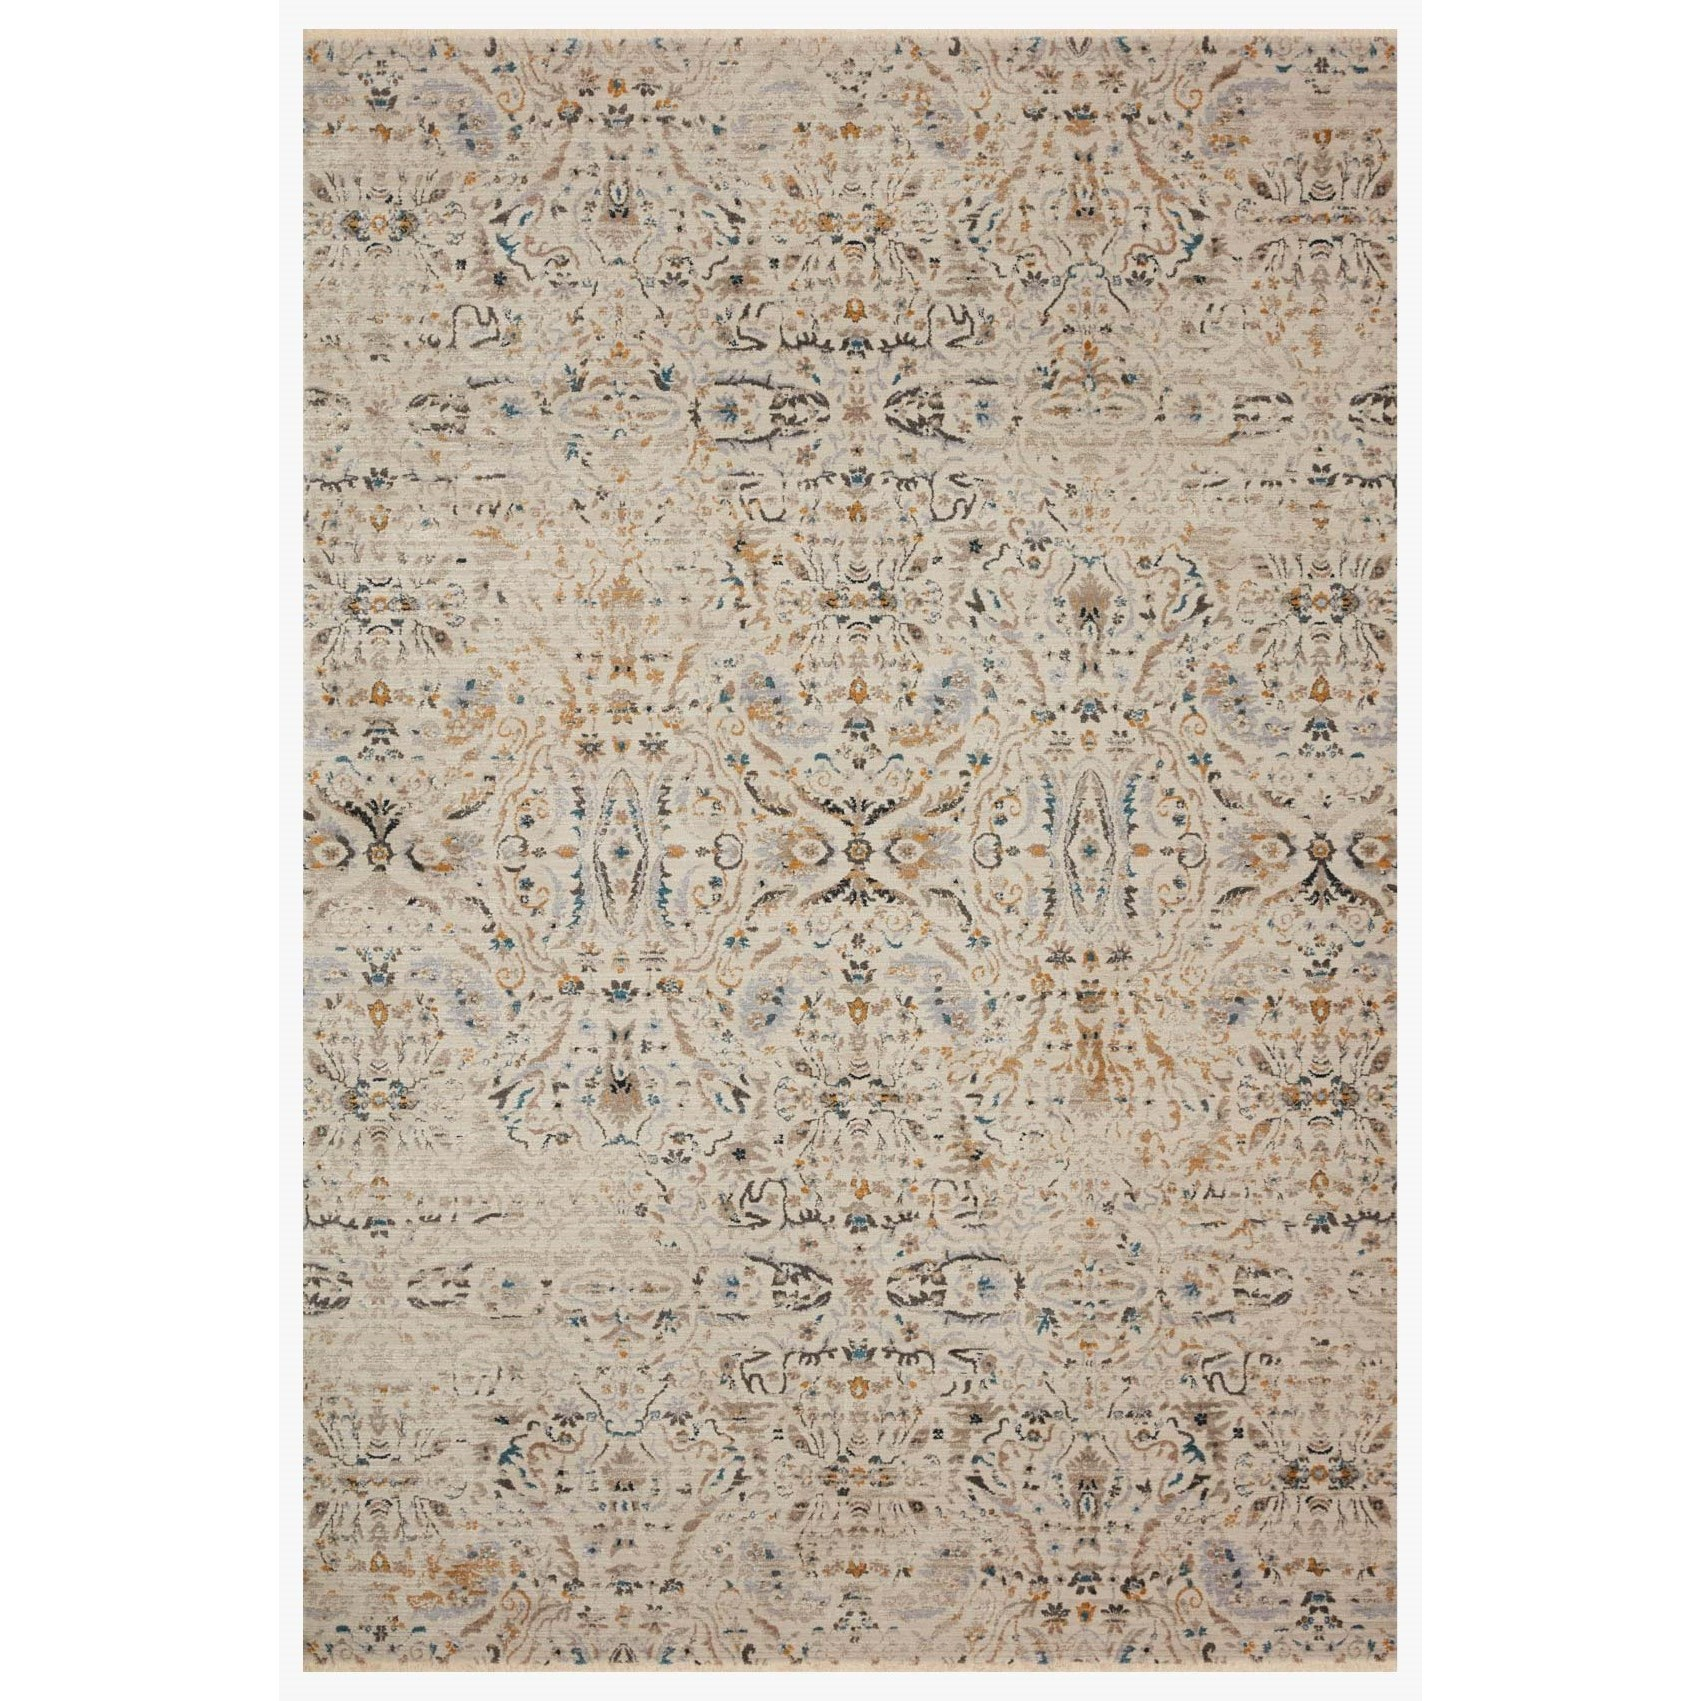 """Leigh 7'10"""" x 10'10"""" Ivory / Straw Rug by Loloi Rugs at Virginia Furniture Market"""